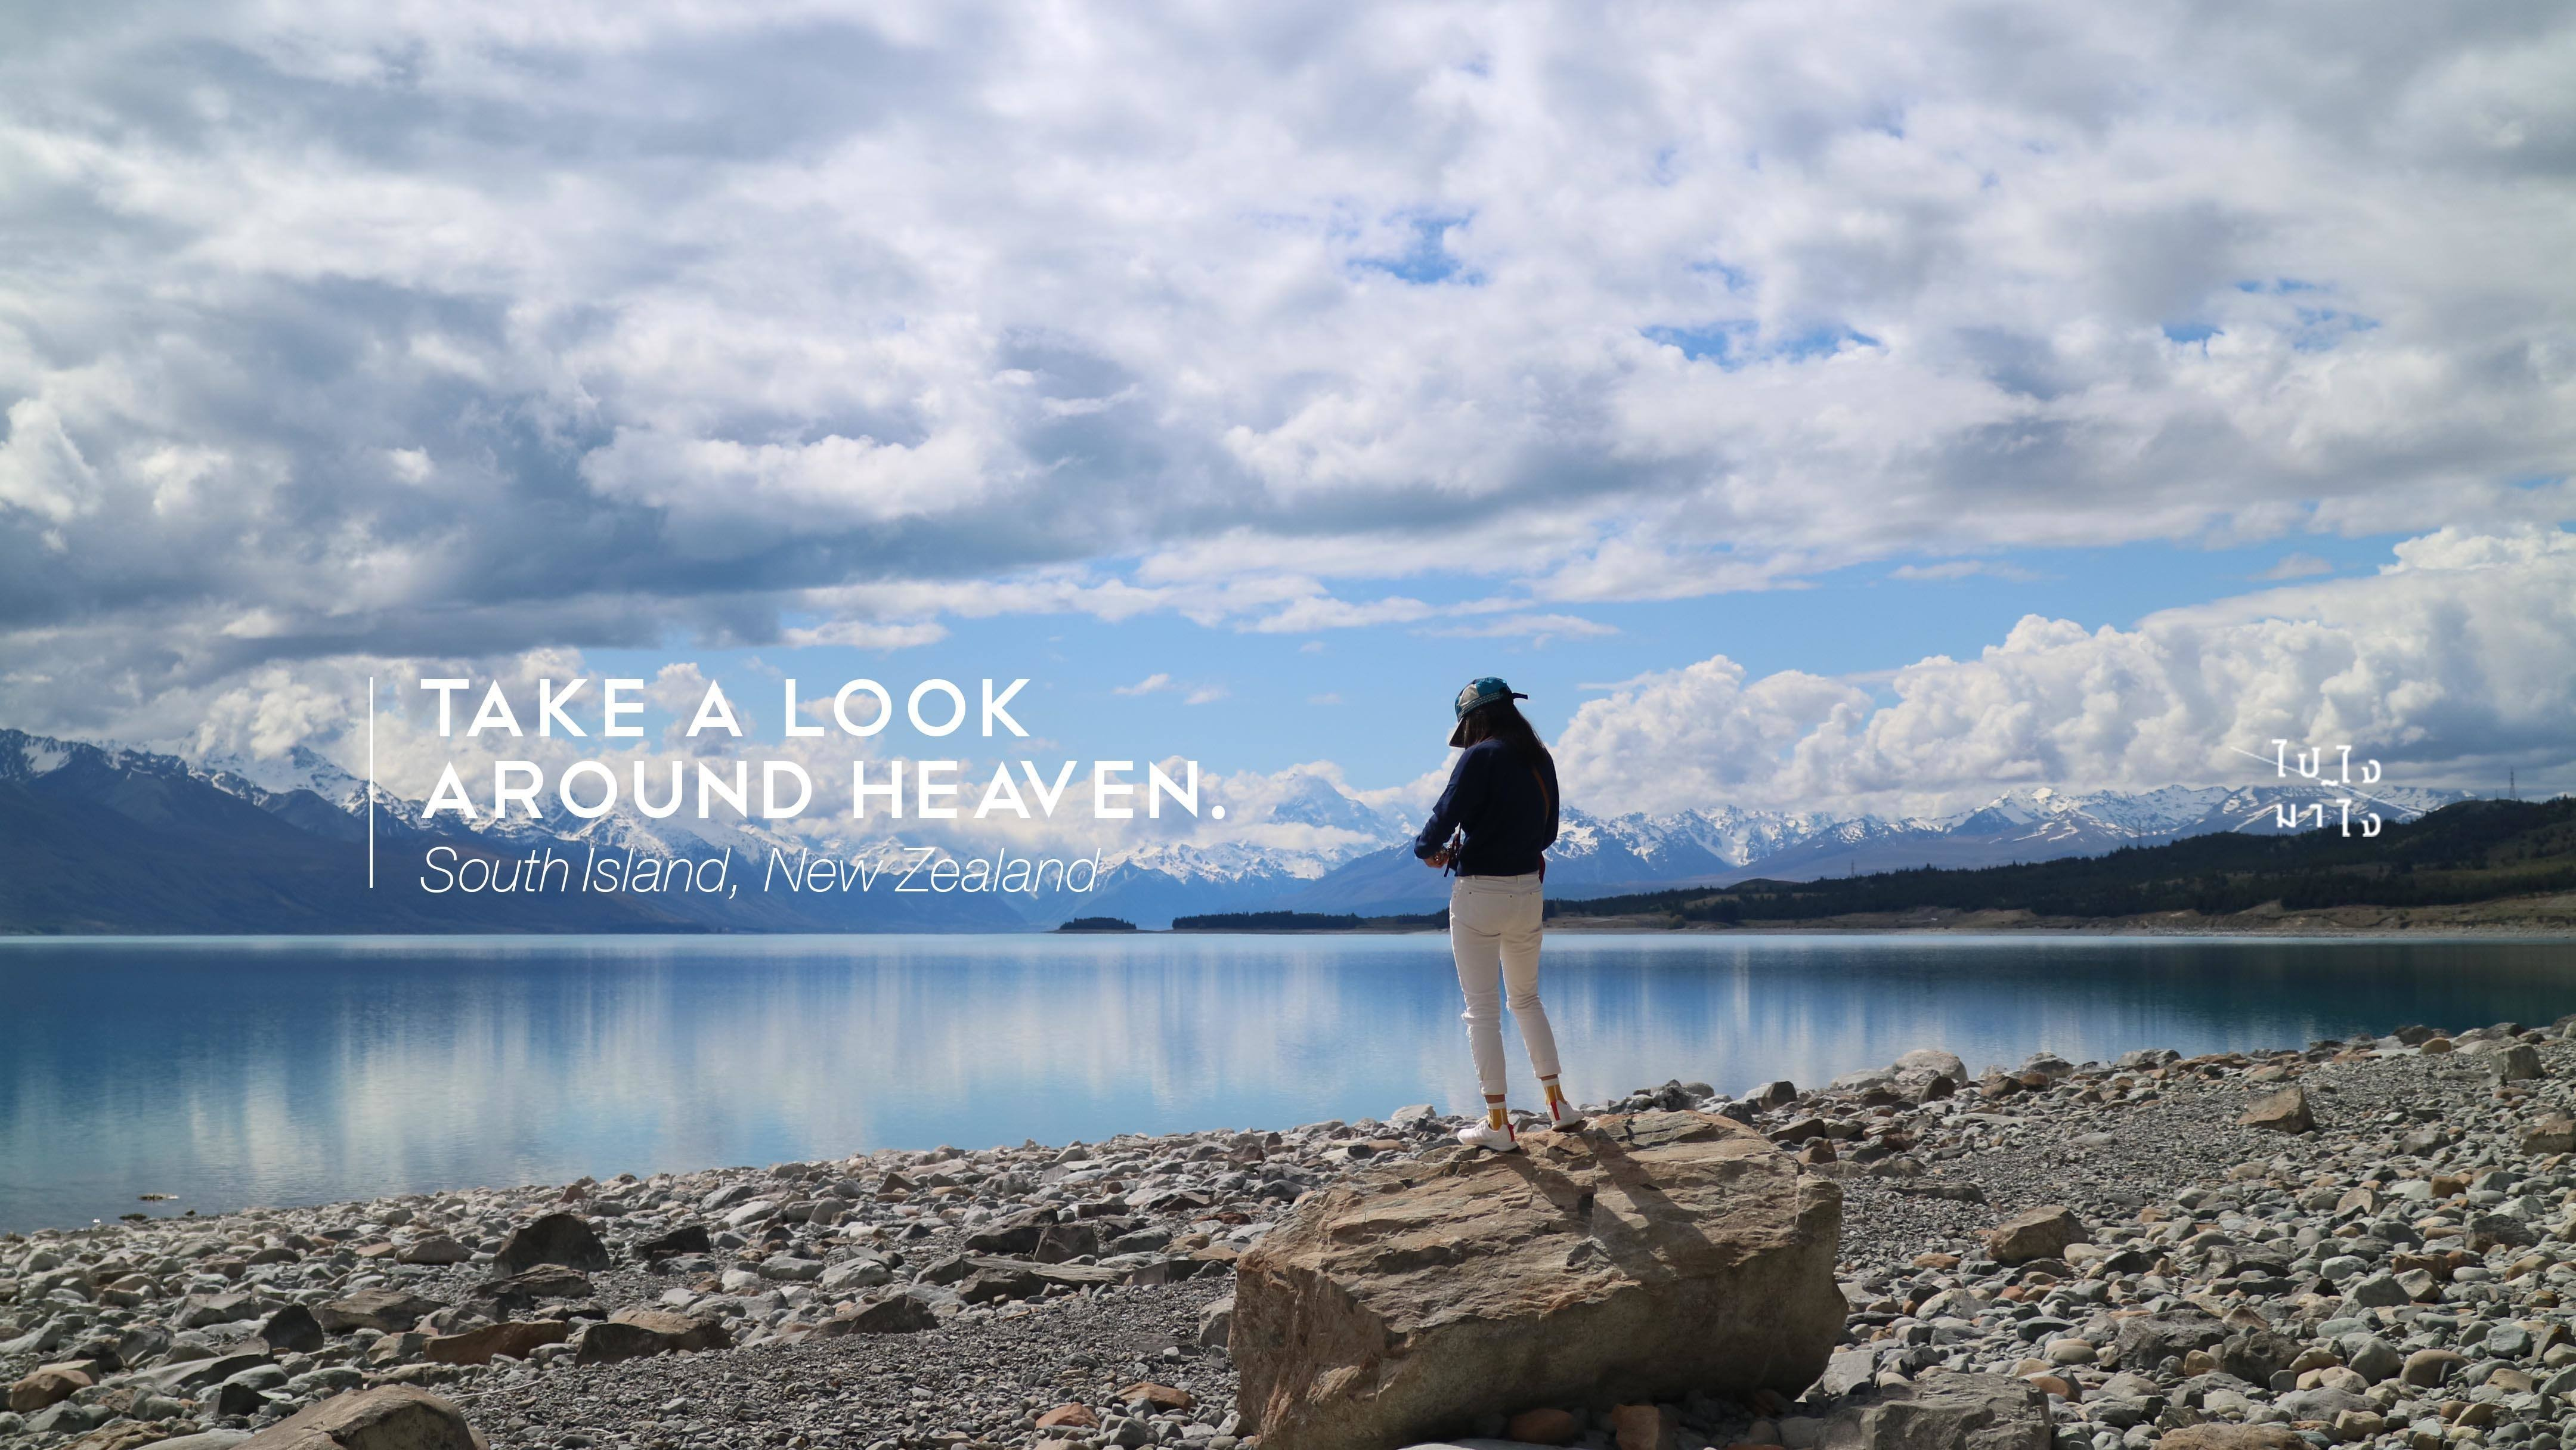 Take a look around HEAVEN, South Island New Zealand